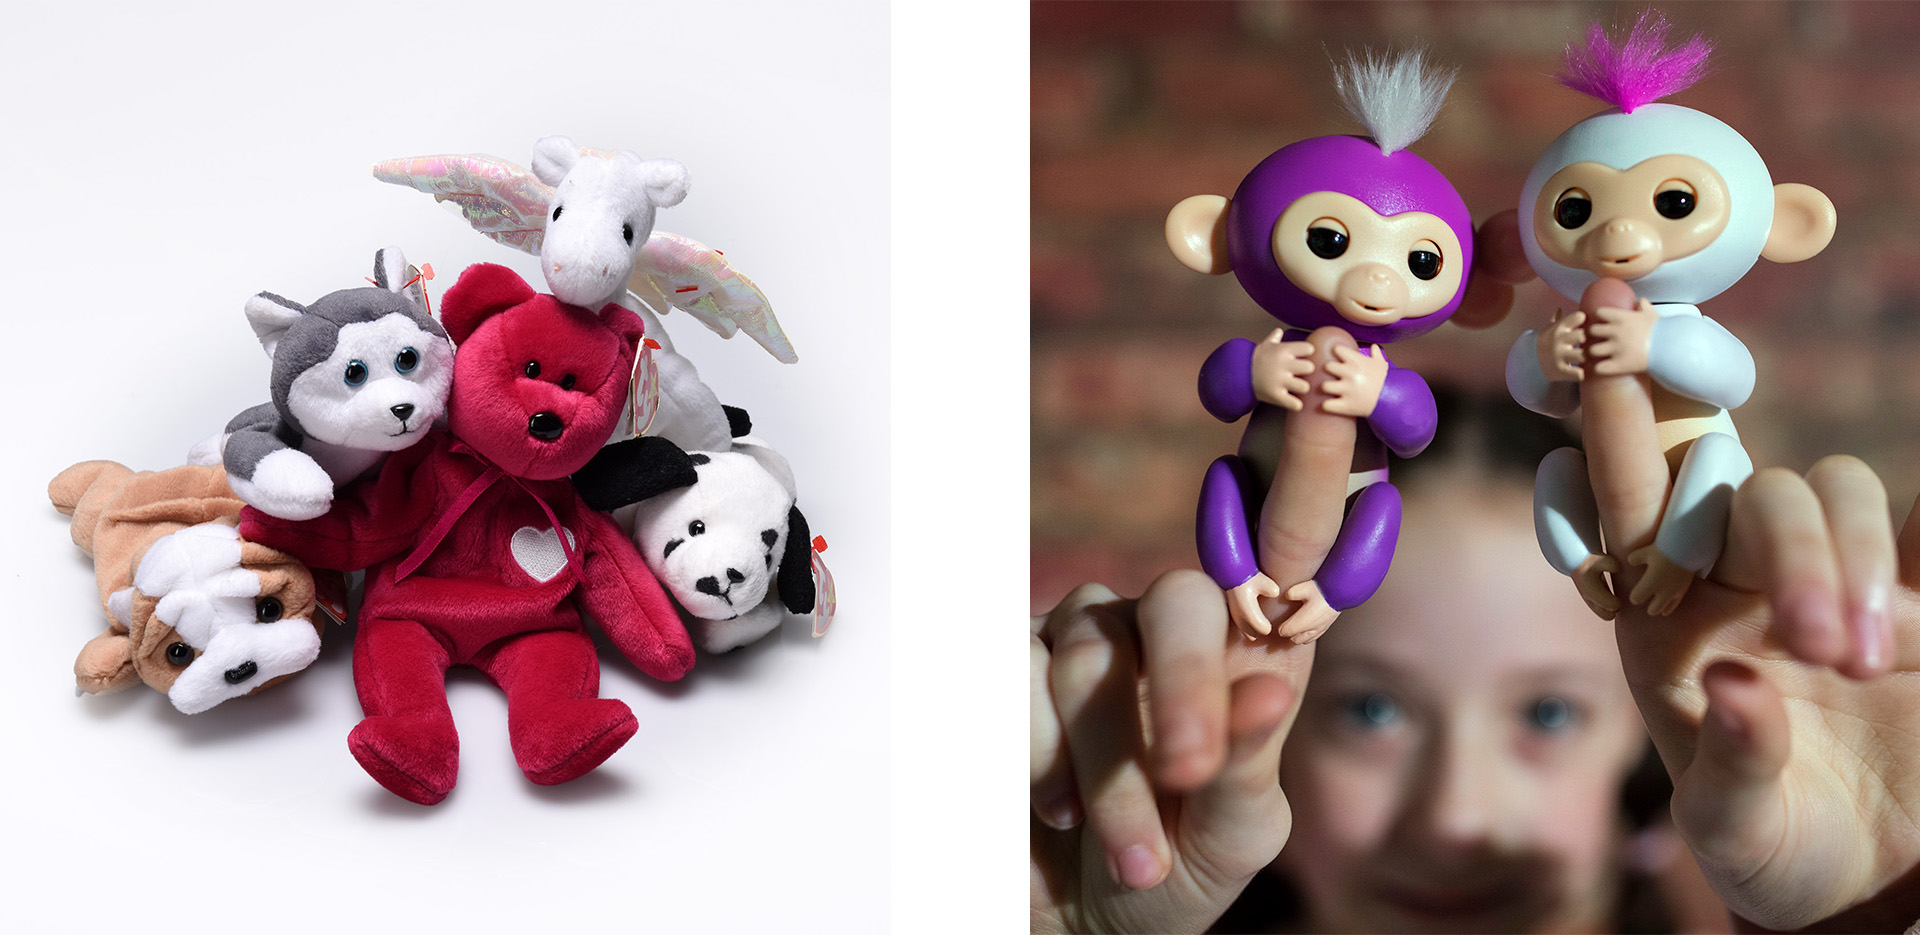 Beanie Babies (Credit: Bill O'Leary/The Washington Post via Getty Images) and WowWee's Fingerlings (Credit: Dan Kitwood/Getty Images)